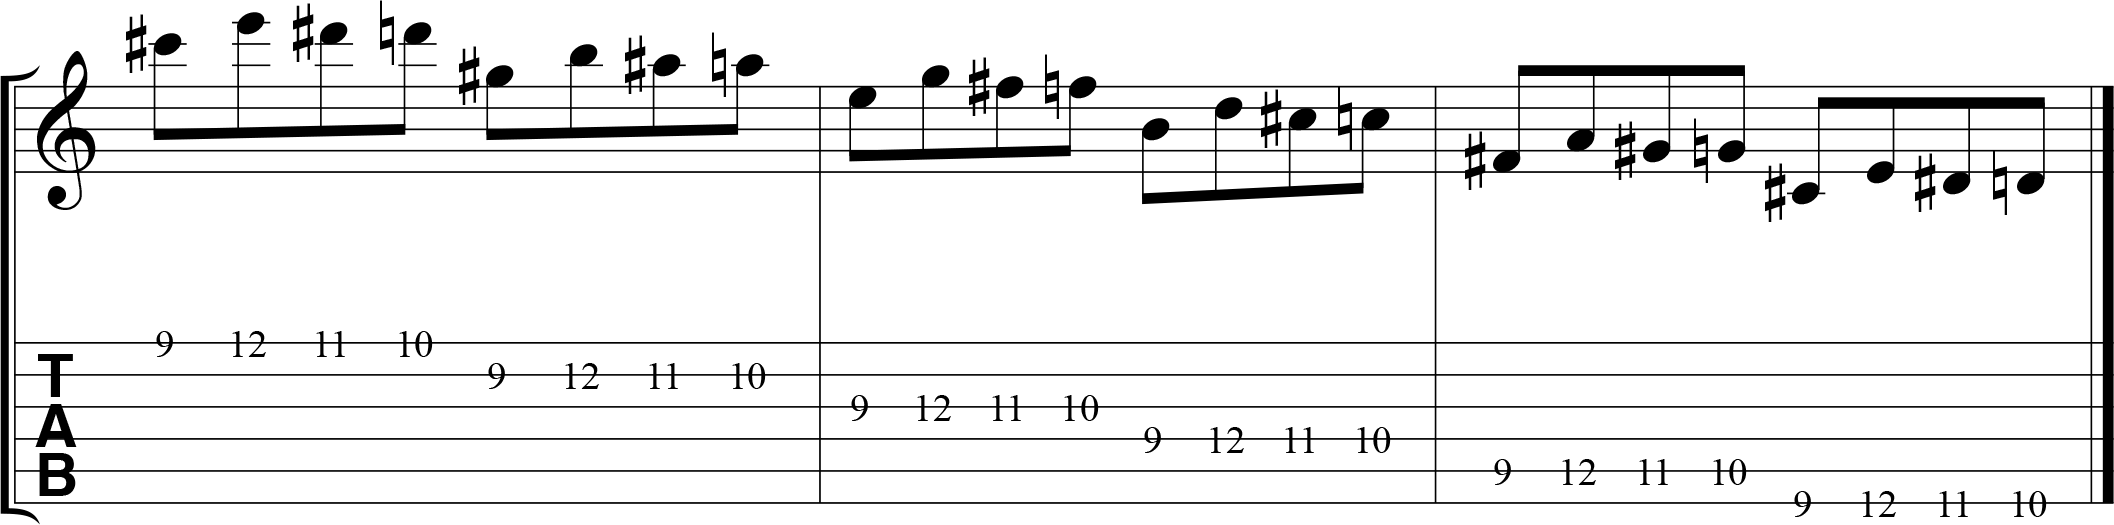 Chromatic alternate picking exercise for guitar, 1432, descending.